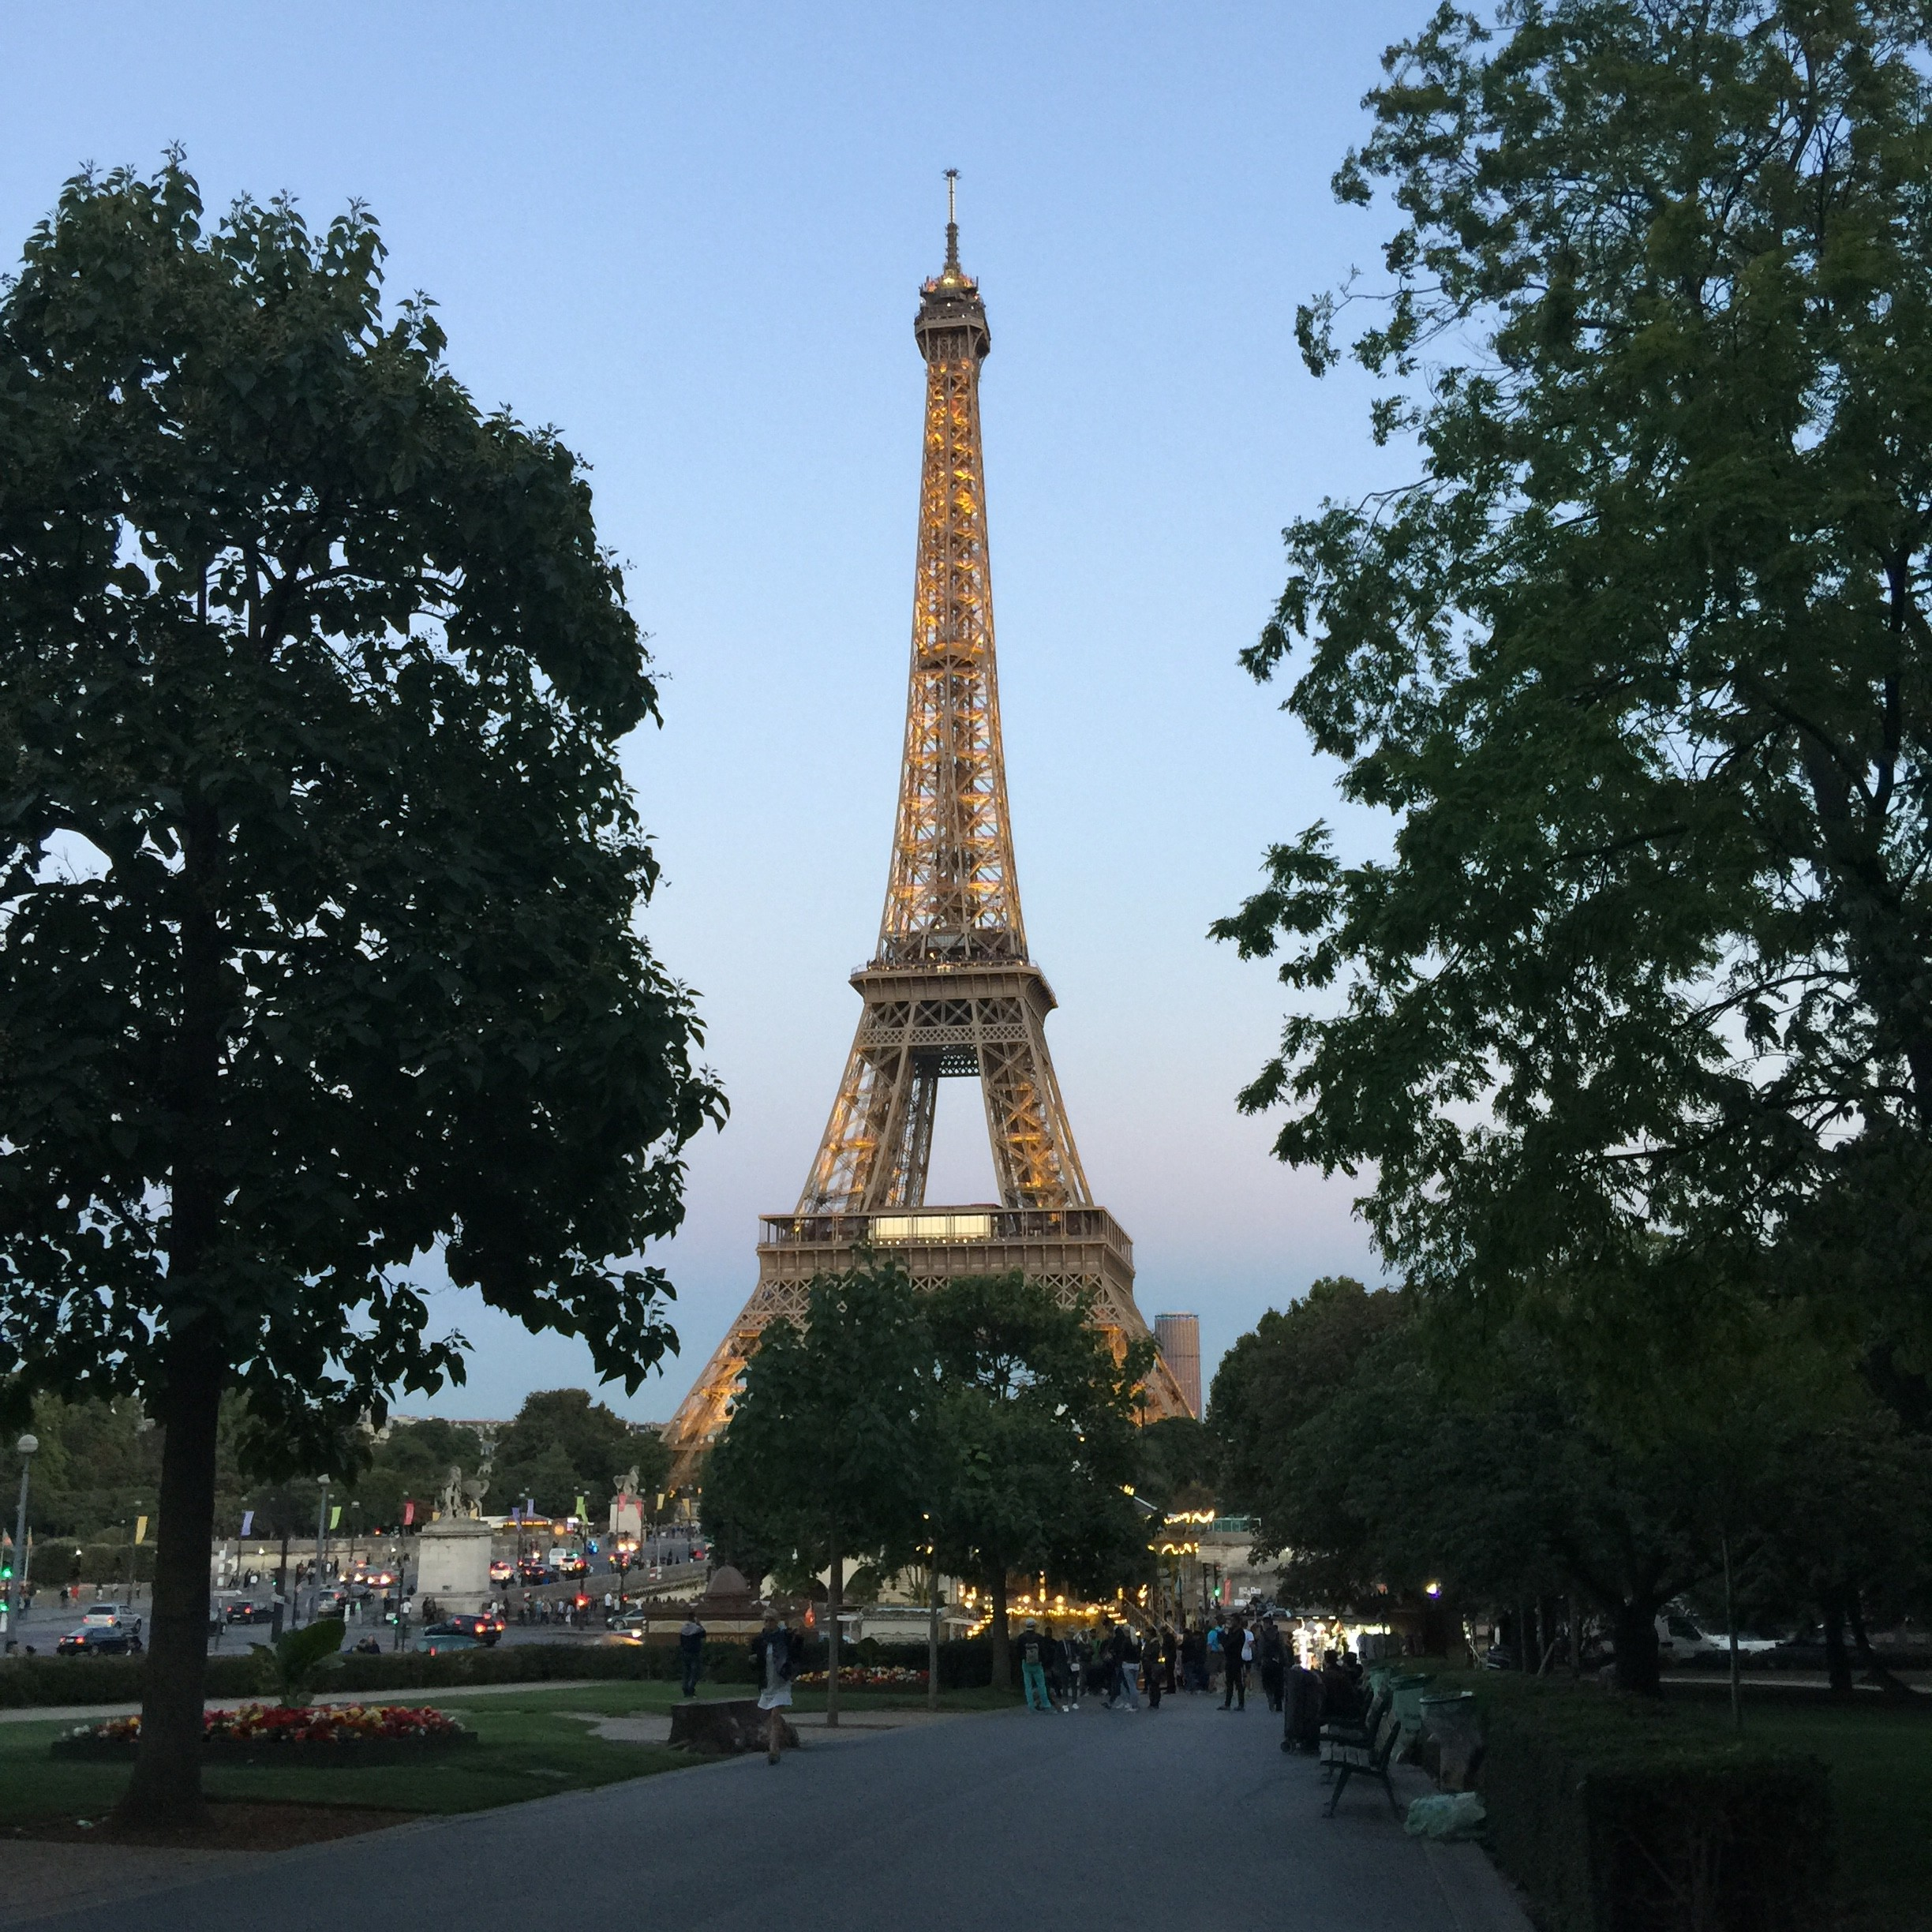 Things To Do In Paris France When Visiting For The First Time